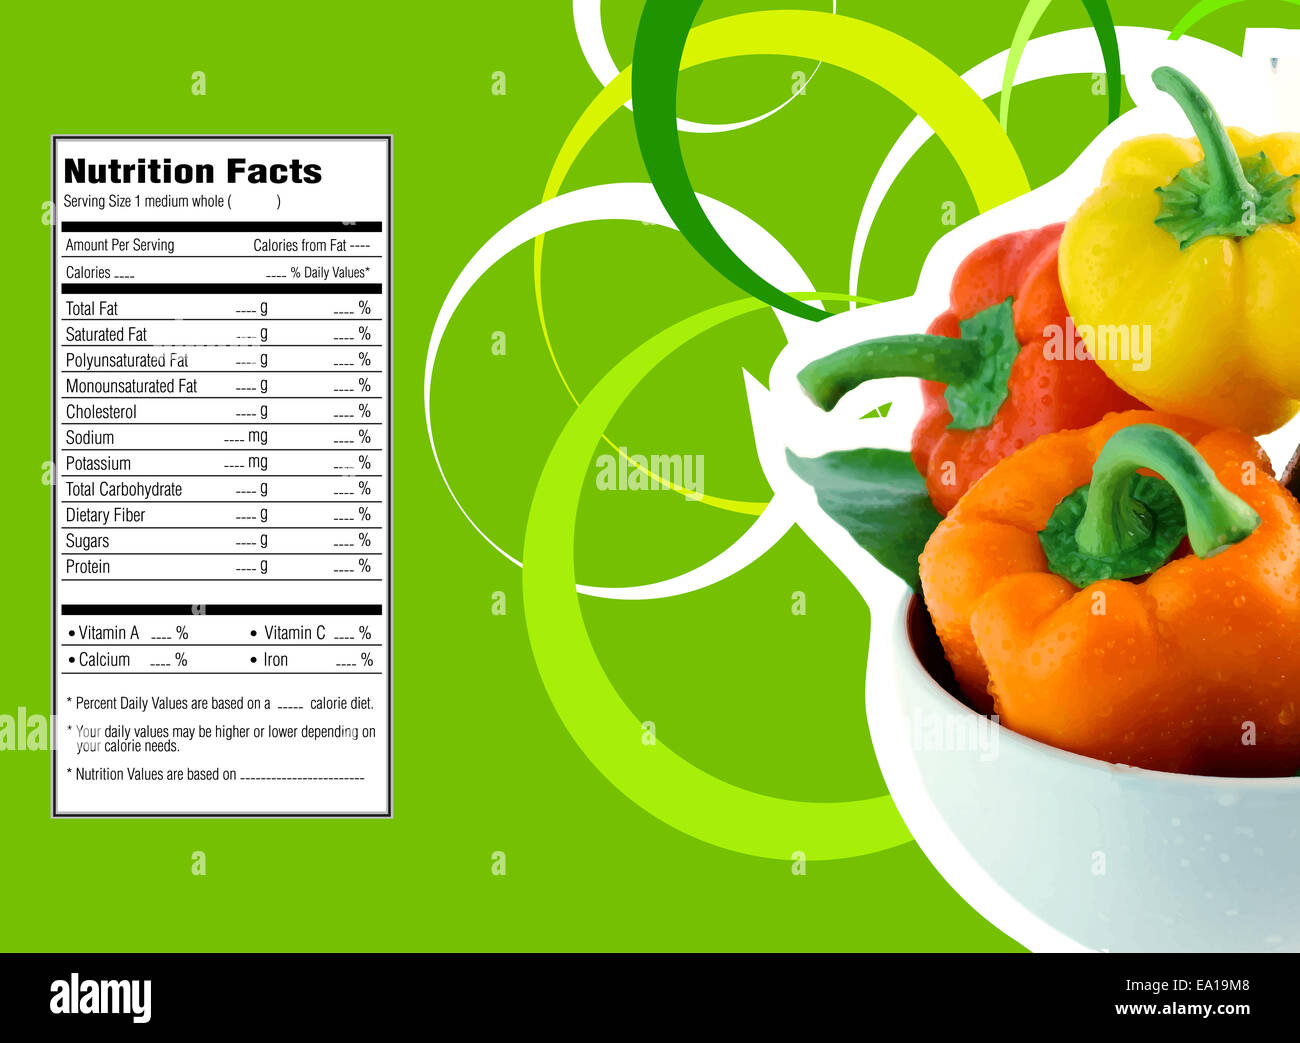 sweet bell pepper nutrition facts stock photo: 75017608 - alamy